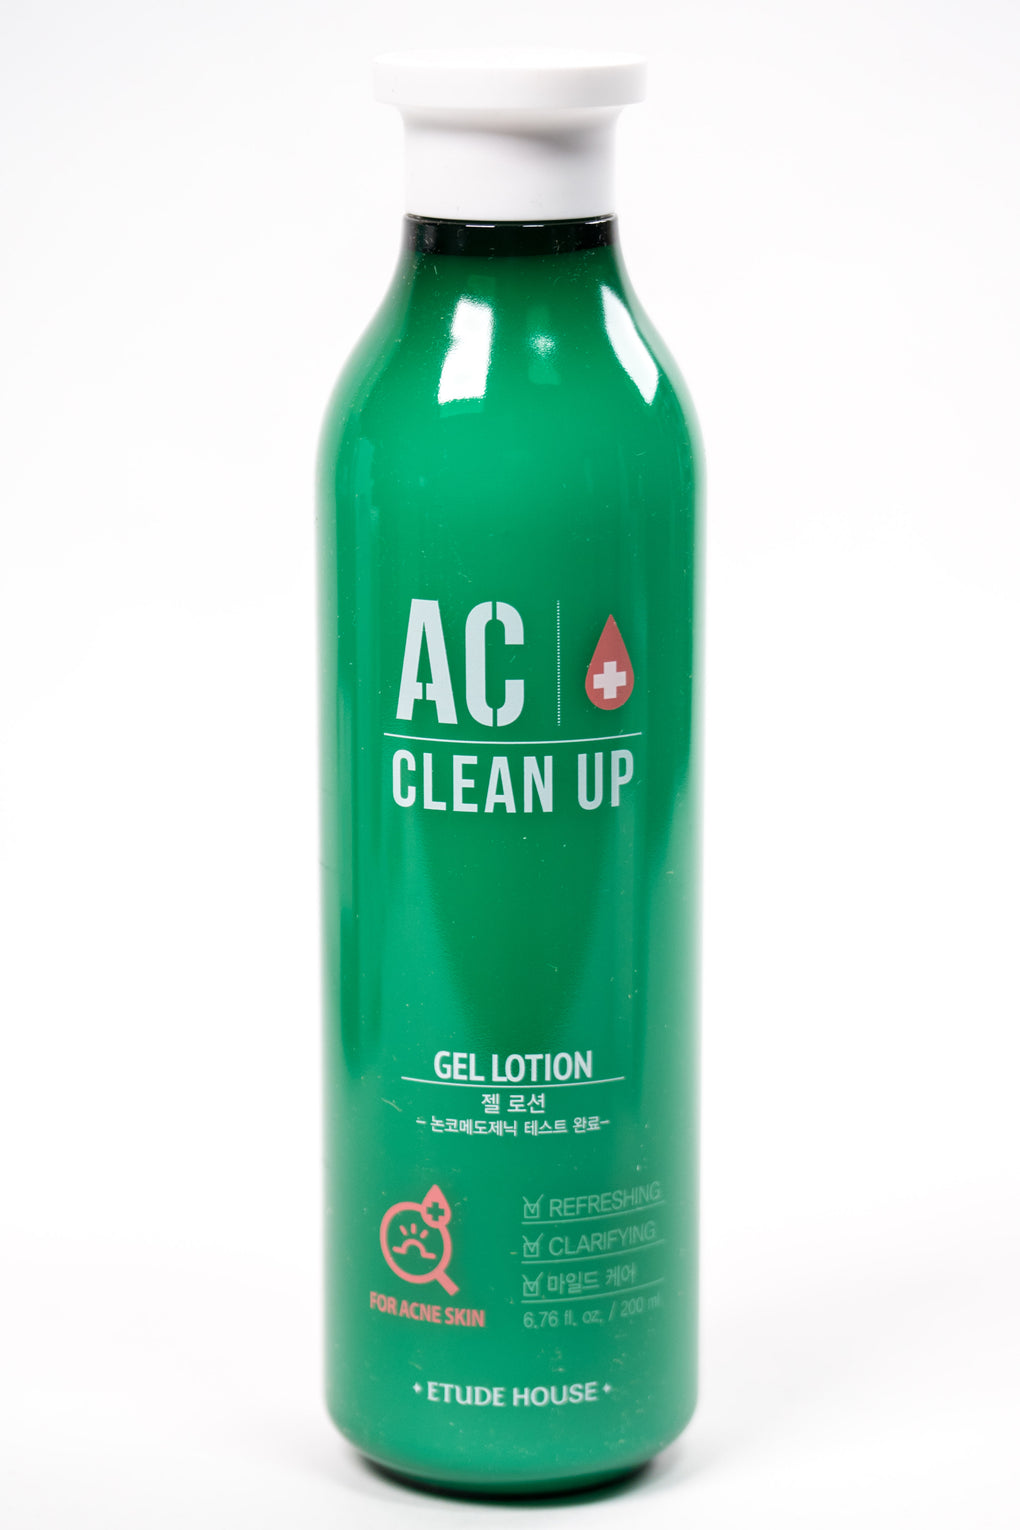 Etude House AC Clean Up Gel Lotion Anti-Acne at Consigliere